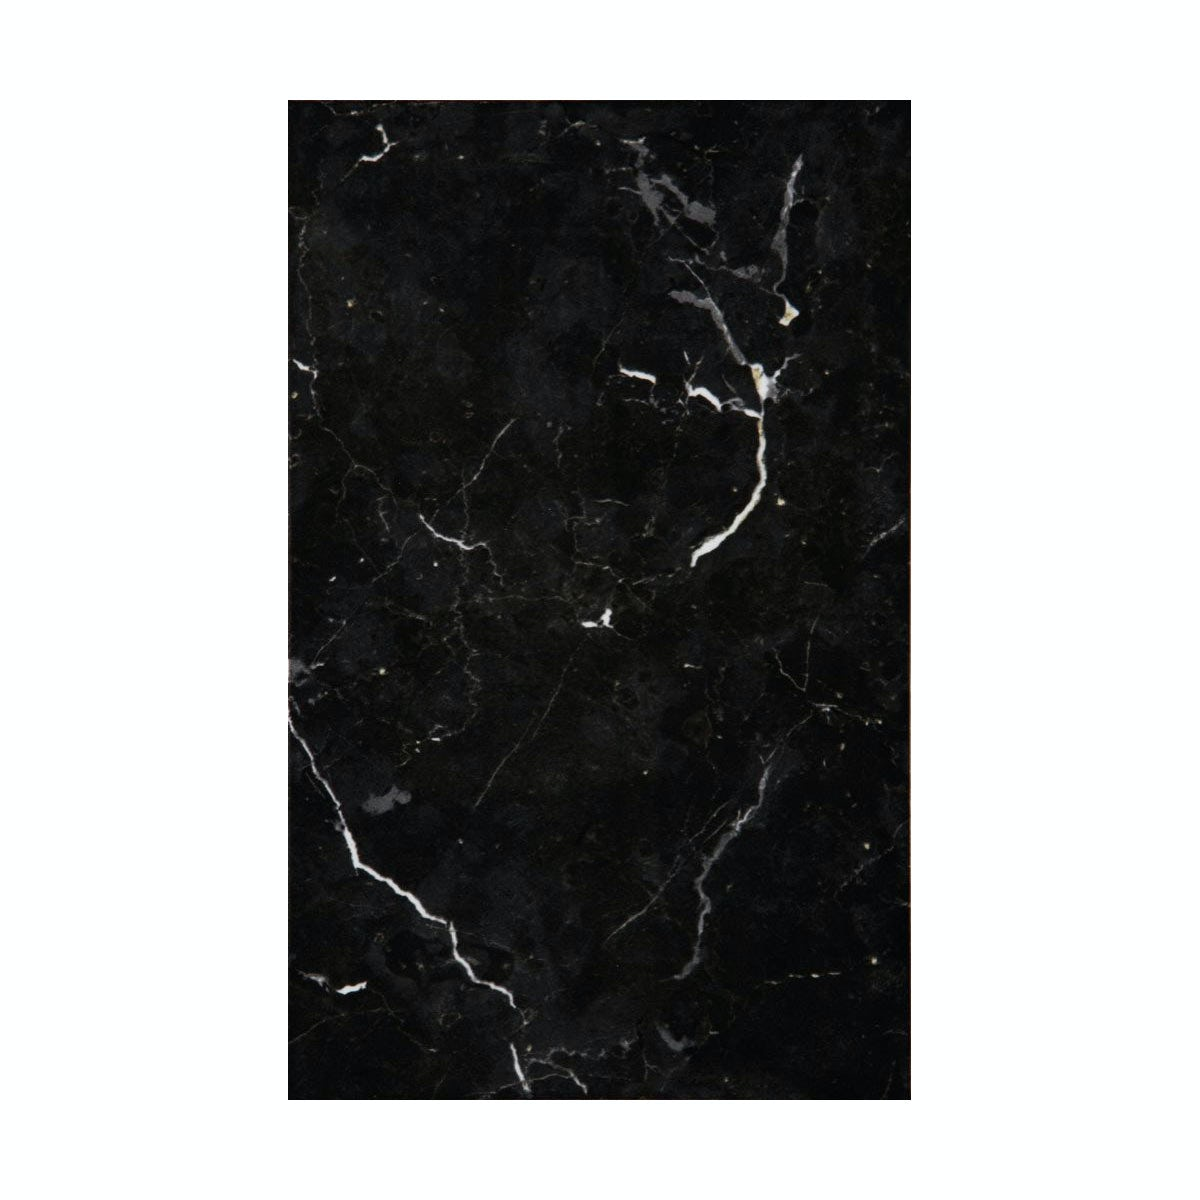 British Ceramic Tile Galaxy black gloss tile 248mm x 398mm